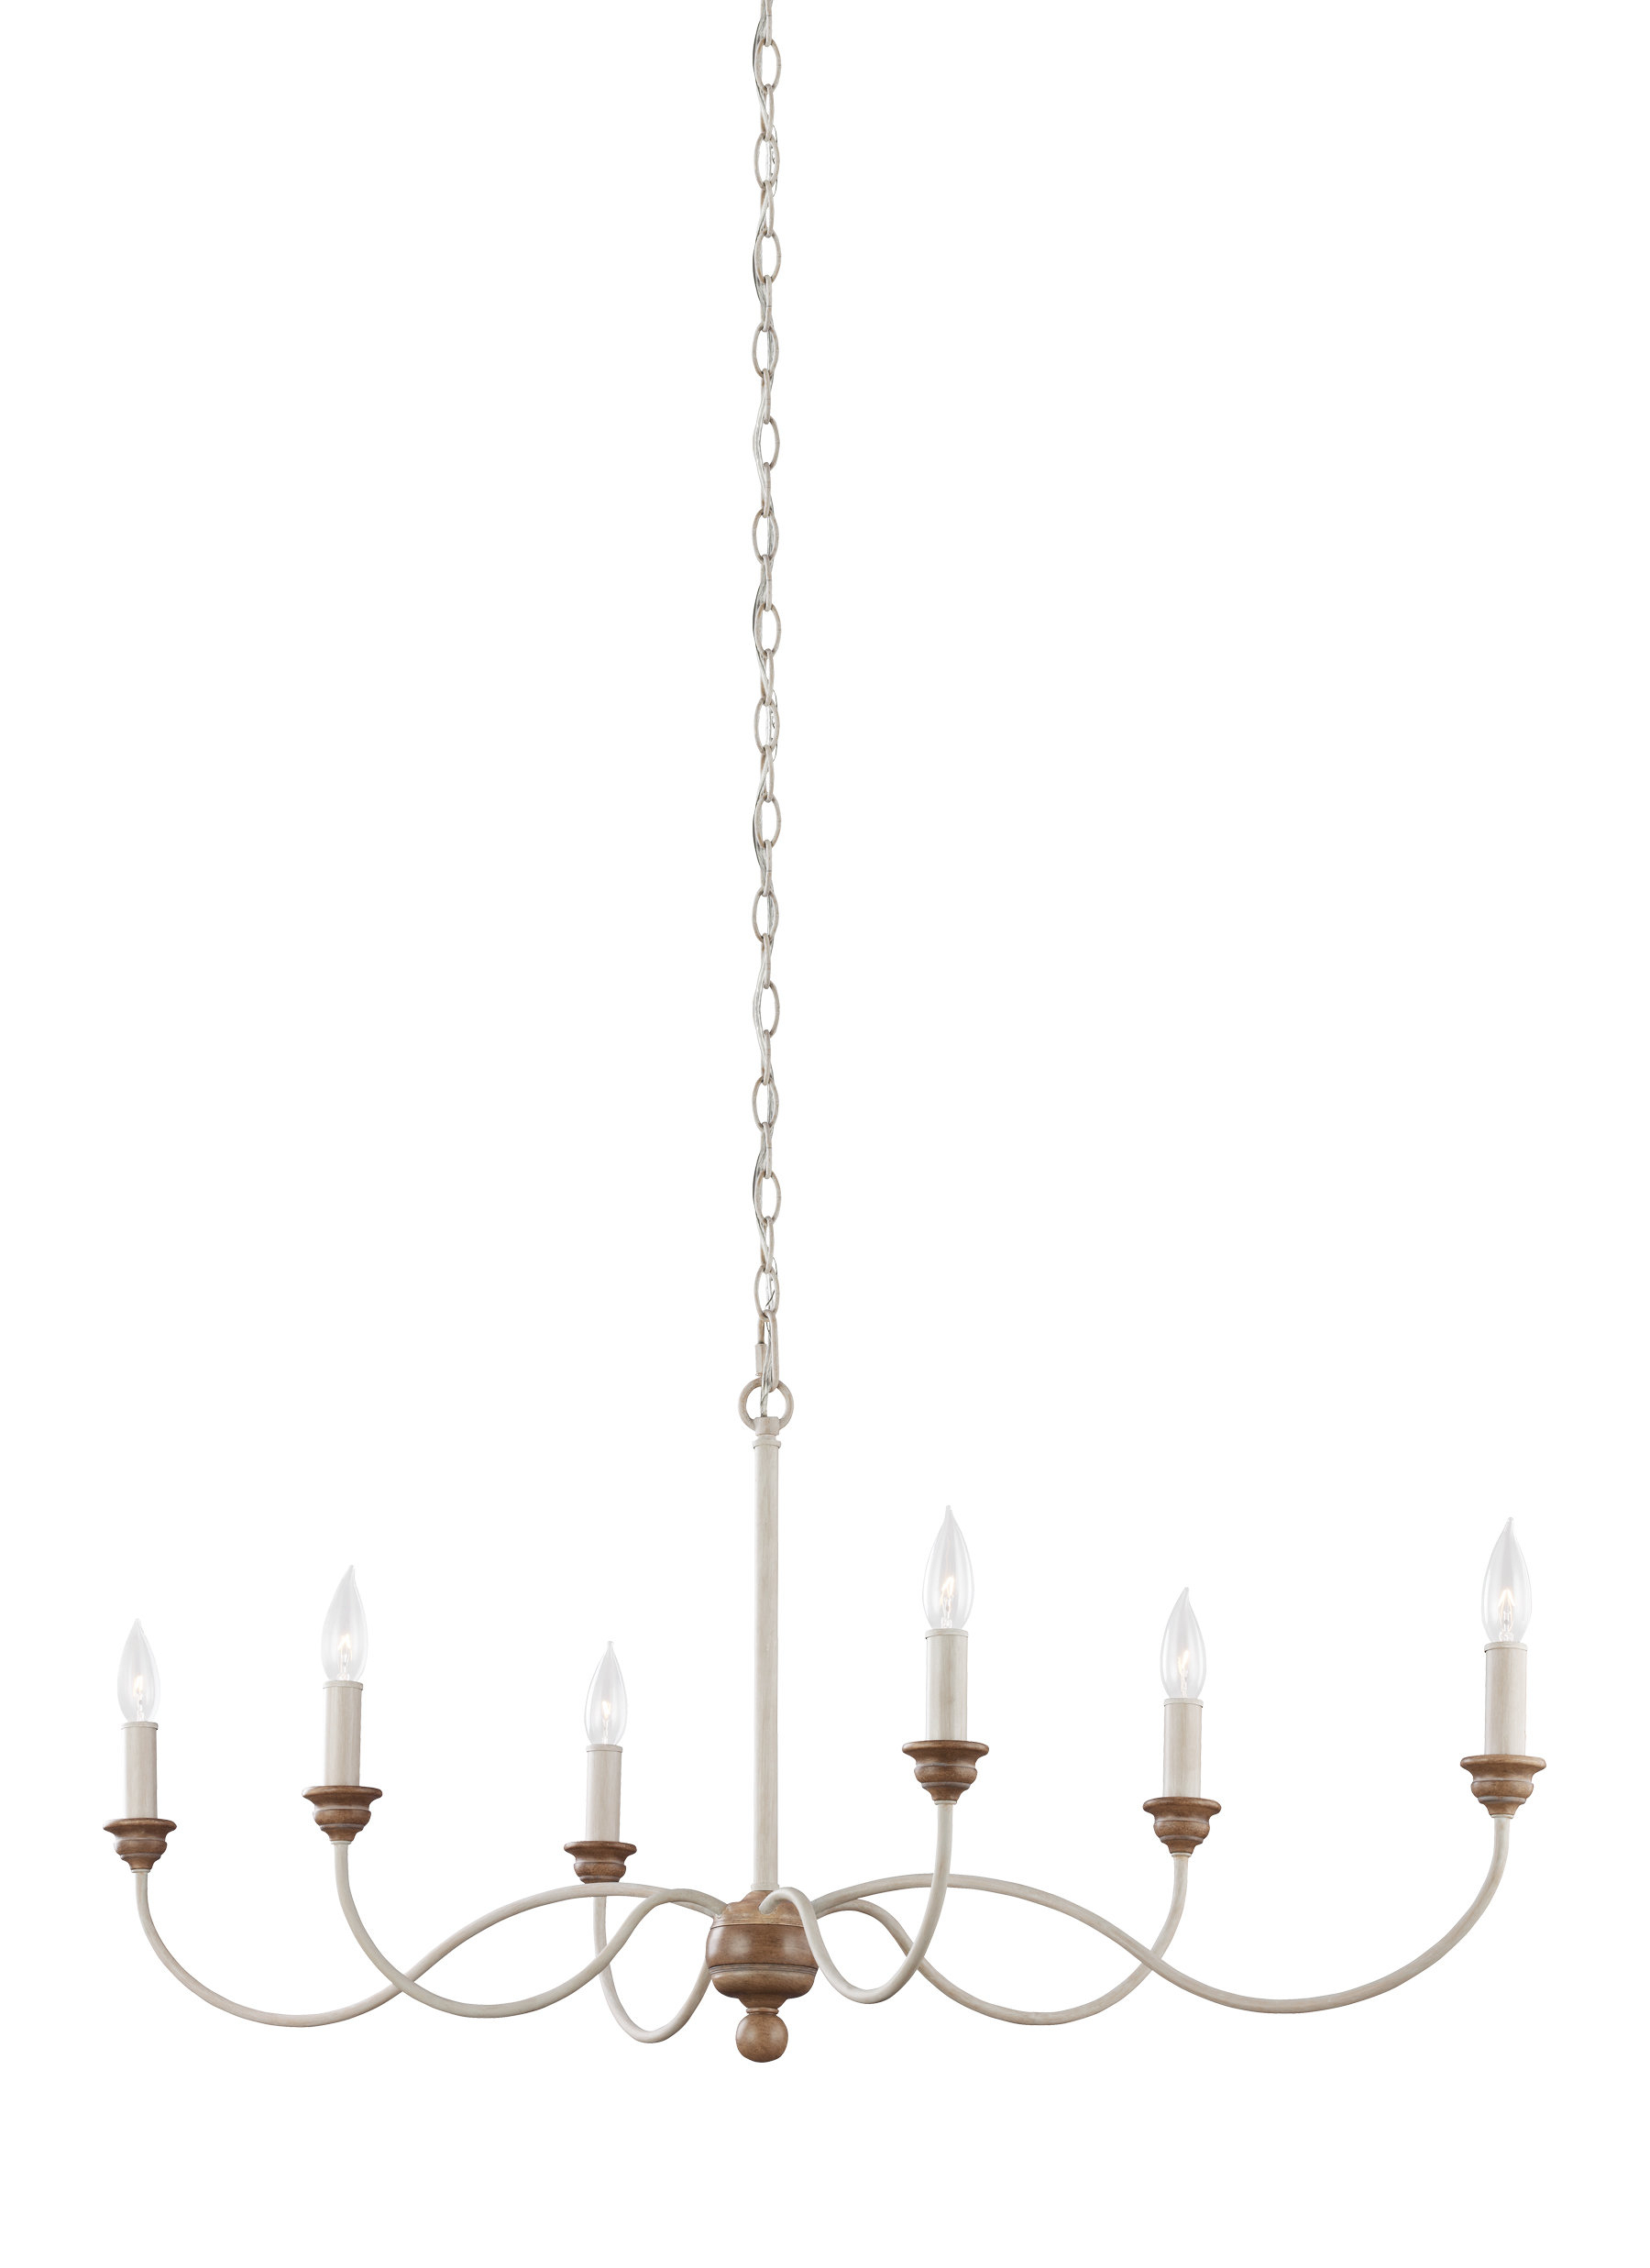 Sundberg 6 Light Candle Style Chandelier With Regard To Famous Shaylee 6 Light Candle Style Chandeliers (View 23 of 25)